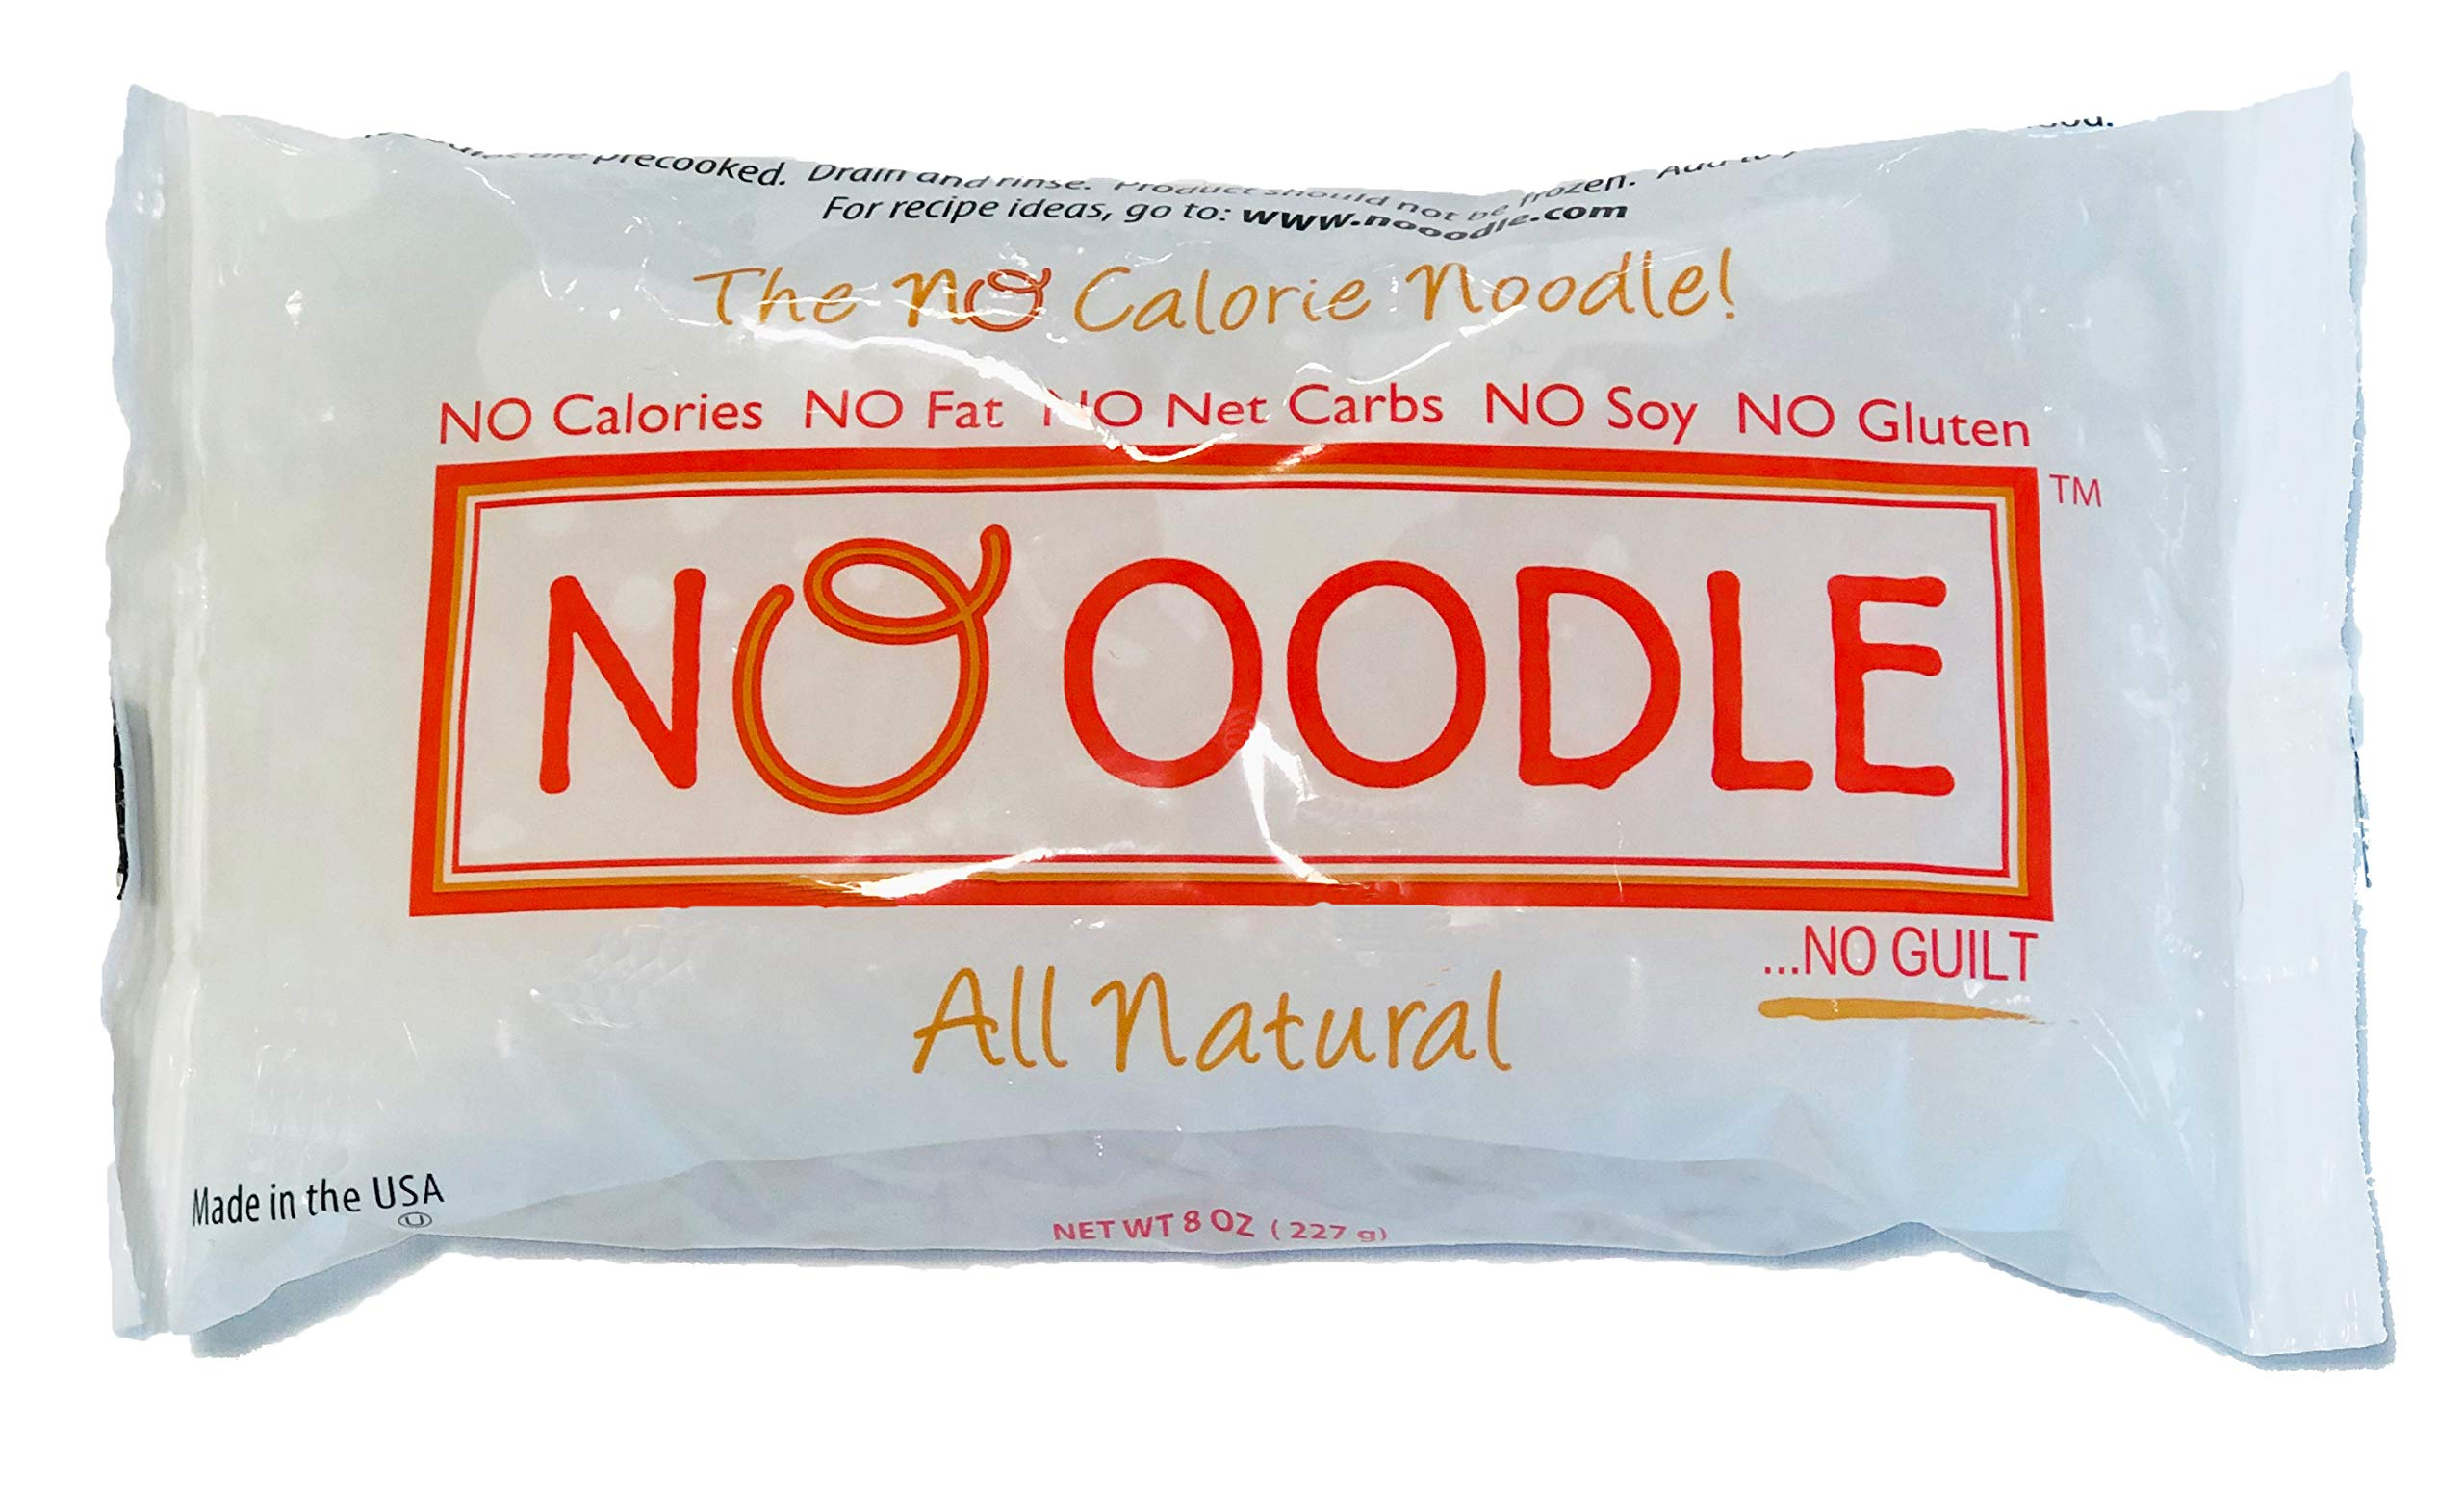 NOoodle No Carb Pasta, Noodle Alternative, Zero Calories, Gluten Free, Keto Friendly, Best Tasting Shirataki Noodles (Angel Hair, 12-pack) by NO OODLE